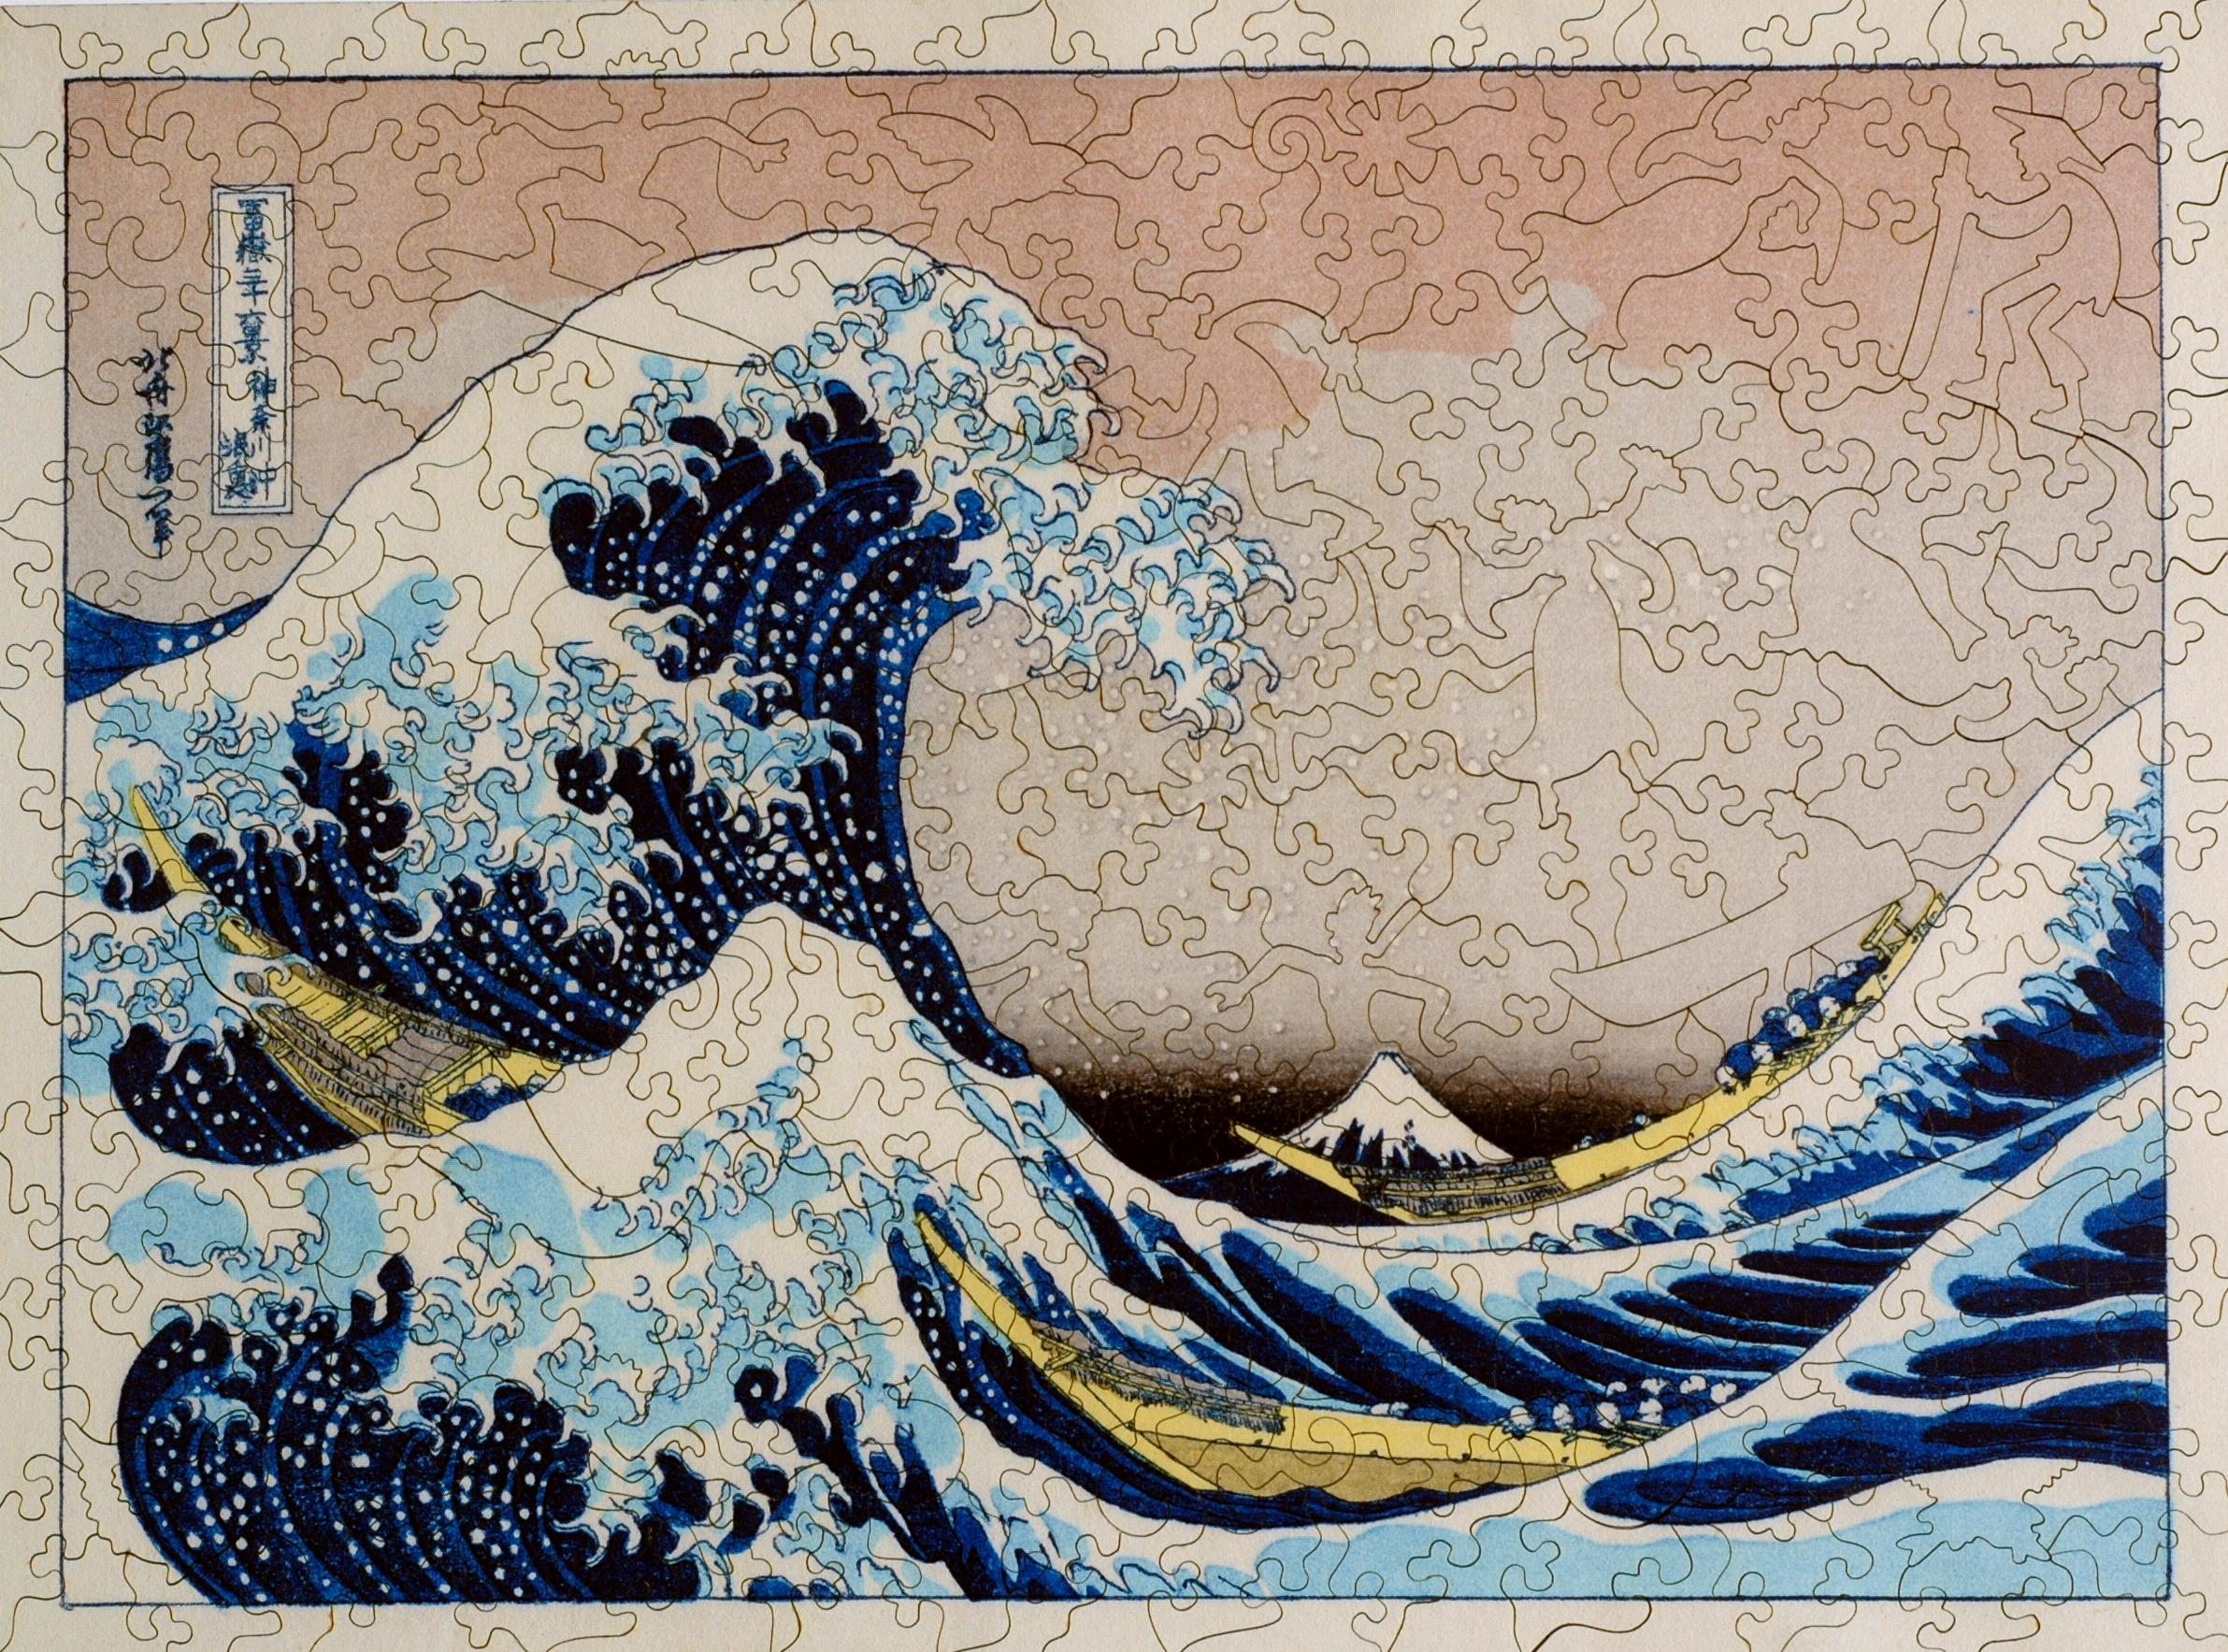 the great wave large piece wooden jigsaw puzzle